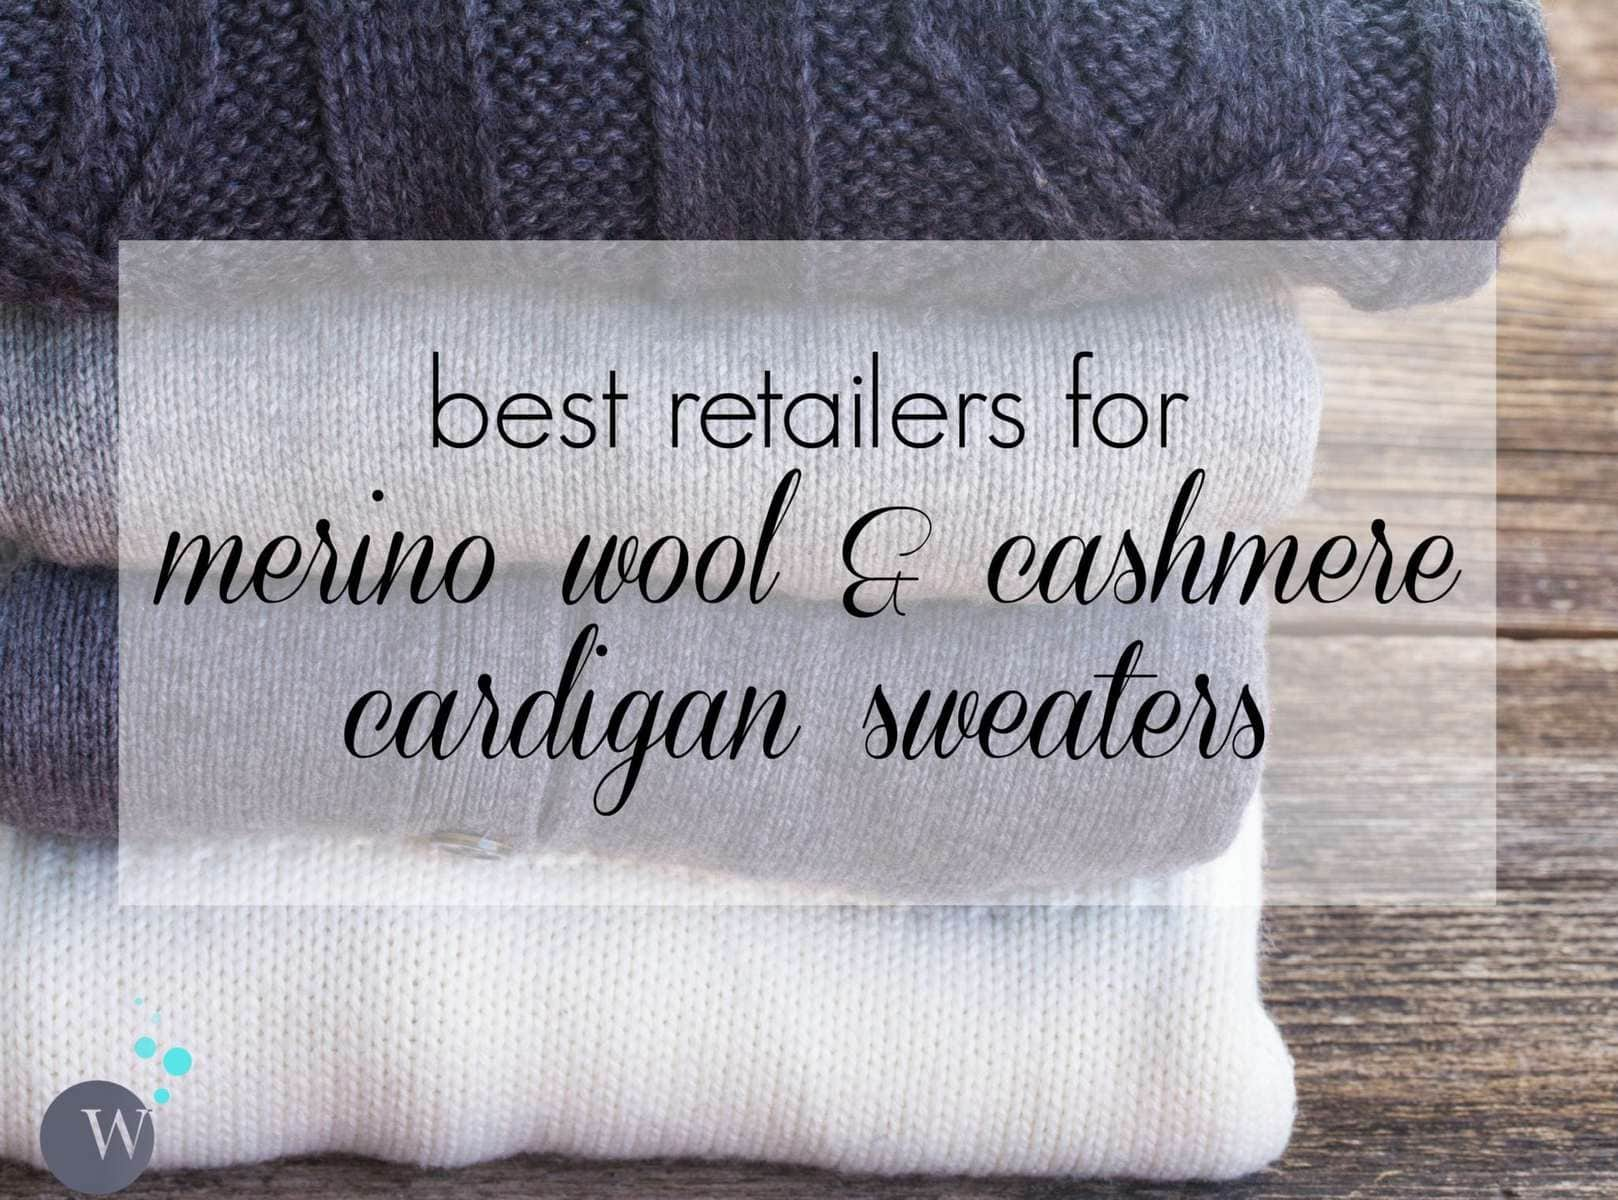 Best place to buy merino wool and cashmere cardigan sweaters for women